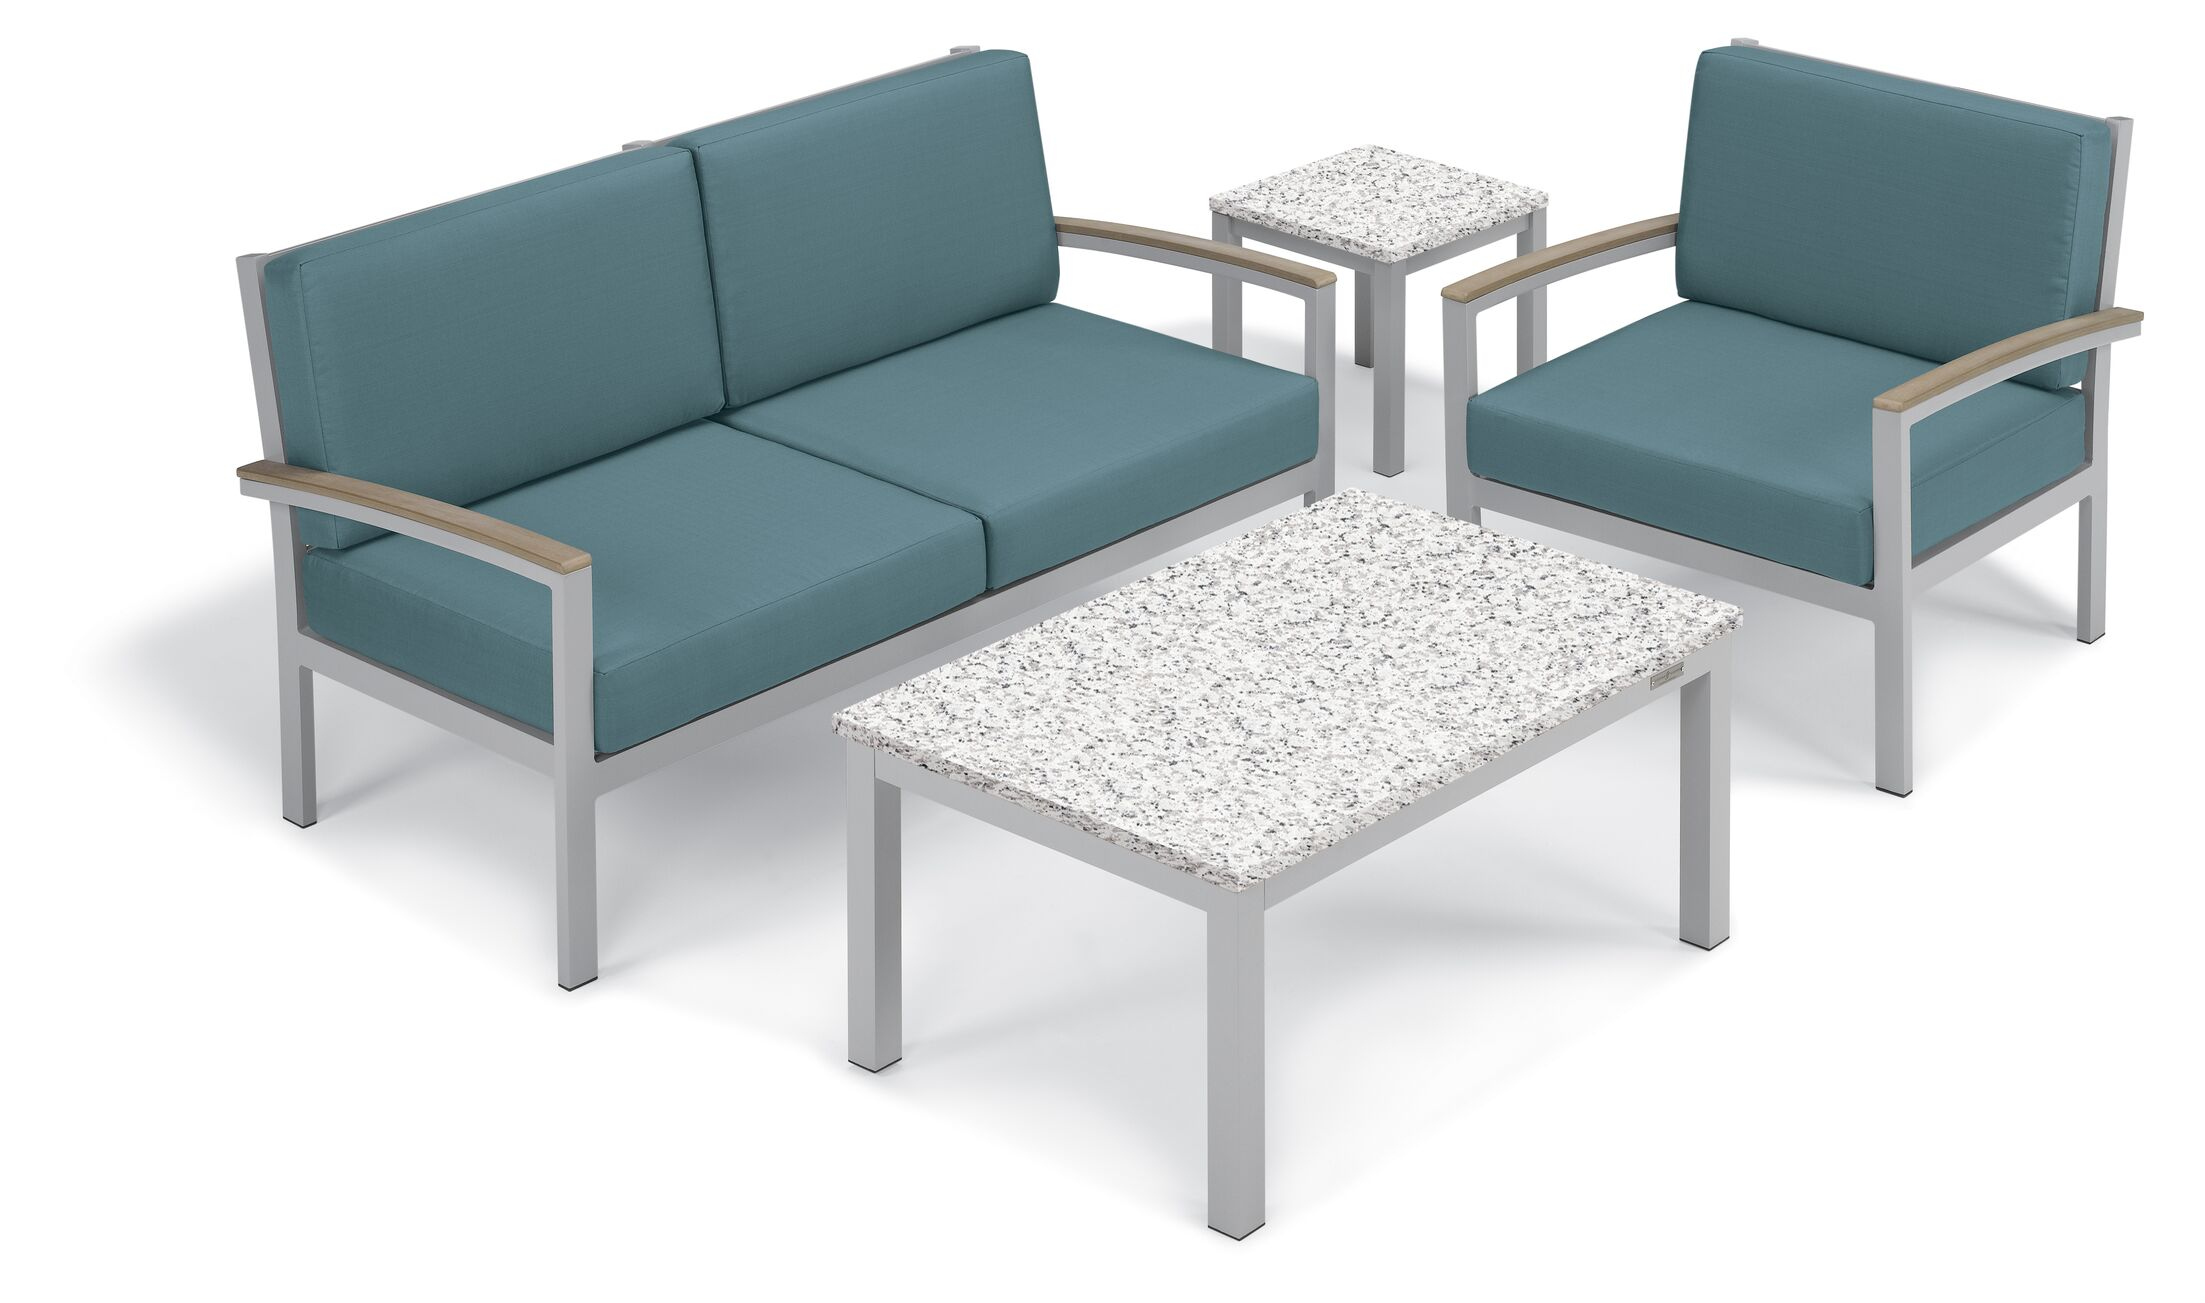 Farmington 5 Piece Sofa Set Frame Color: Vintage, Fabric: Ice Blue, Table Top Color: Ash